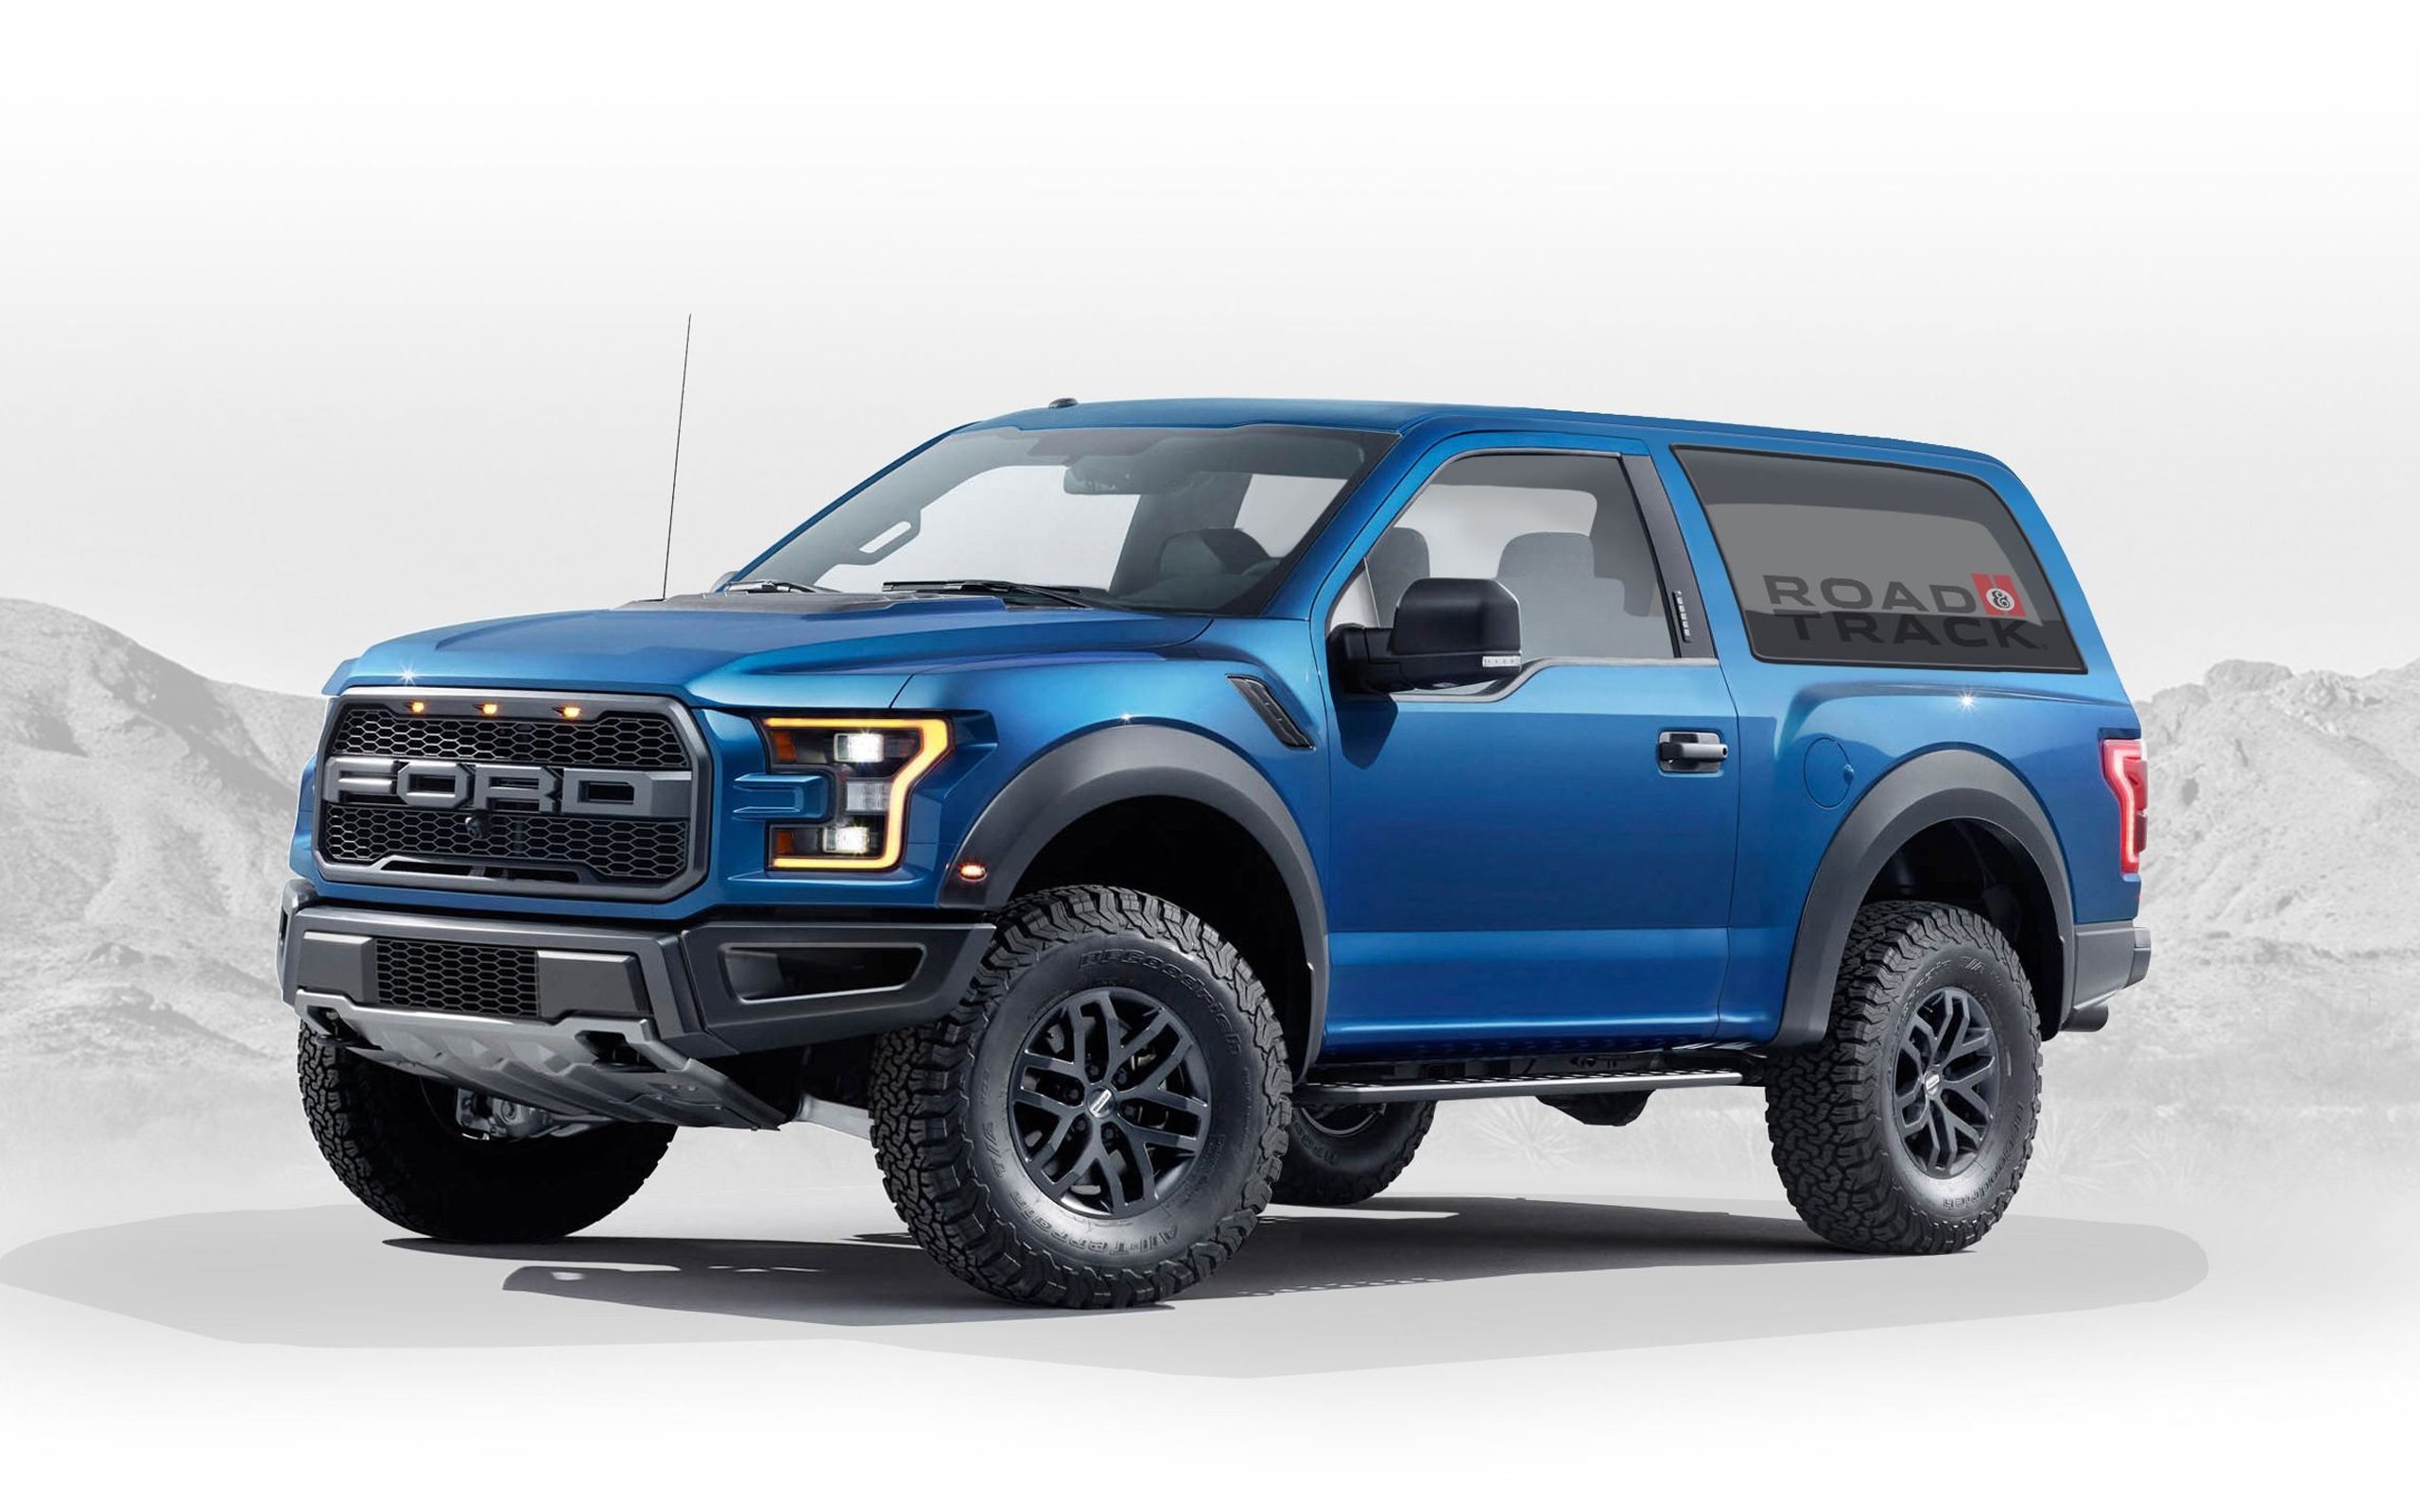 Hennessey Performance will be offering a line of highperformance and extreme offroad upgrades for the 2020 Ford Bronco Upgrades will include highflow air